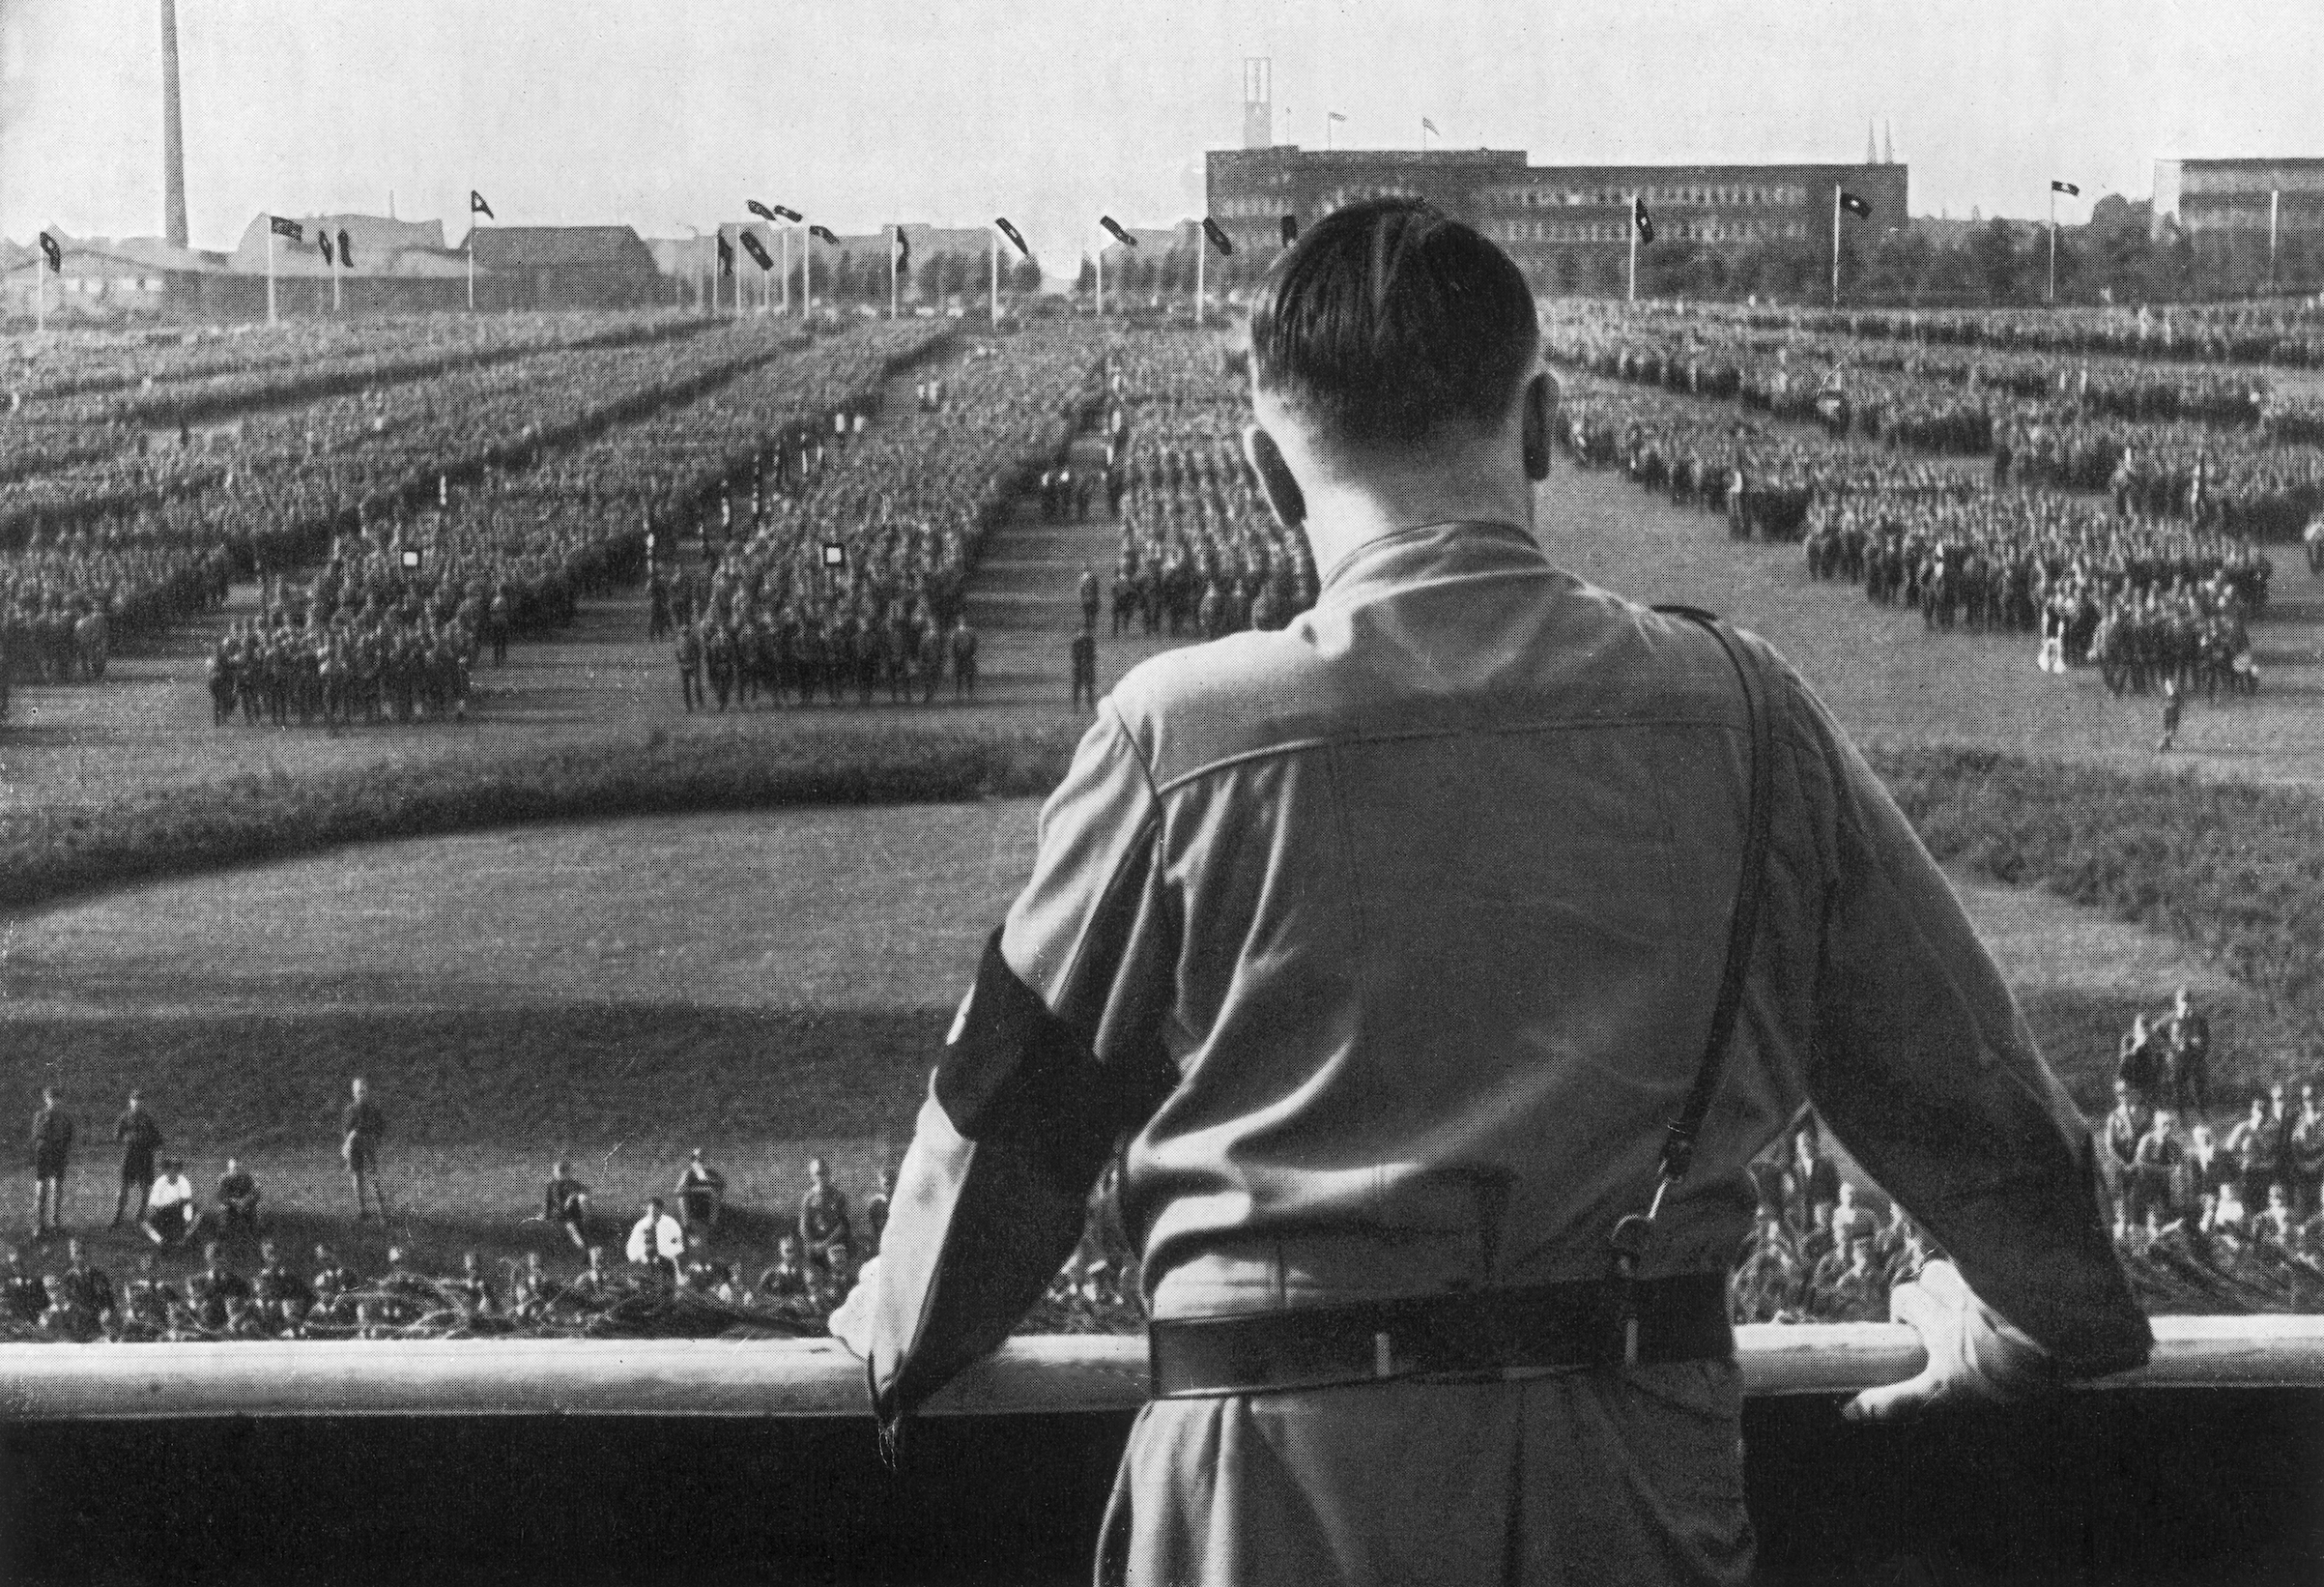 Nazi leader Adolf Hitler addresses soldiers with his back facing the camera at a Nazi rally in Dortmund, Germany, in 1933.